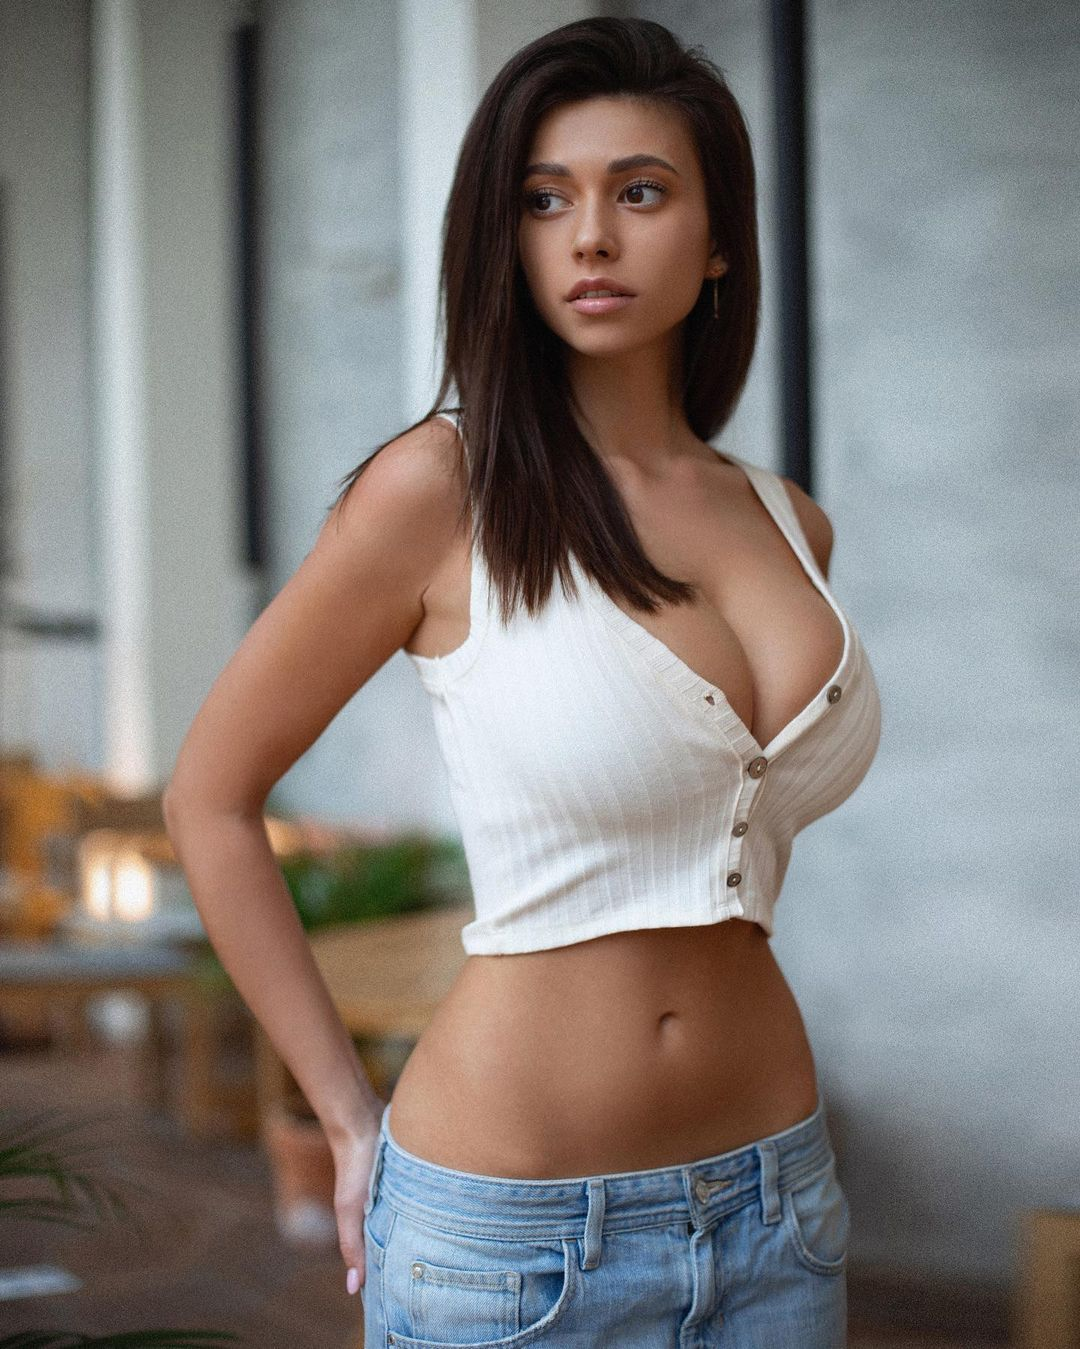 Model Cristy Ren highlights her beauty with her white outfit 1